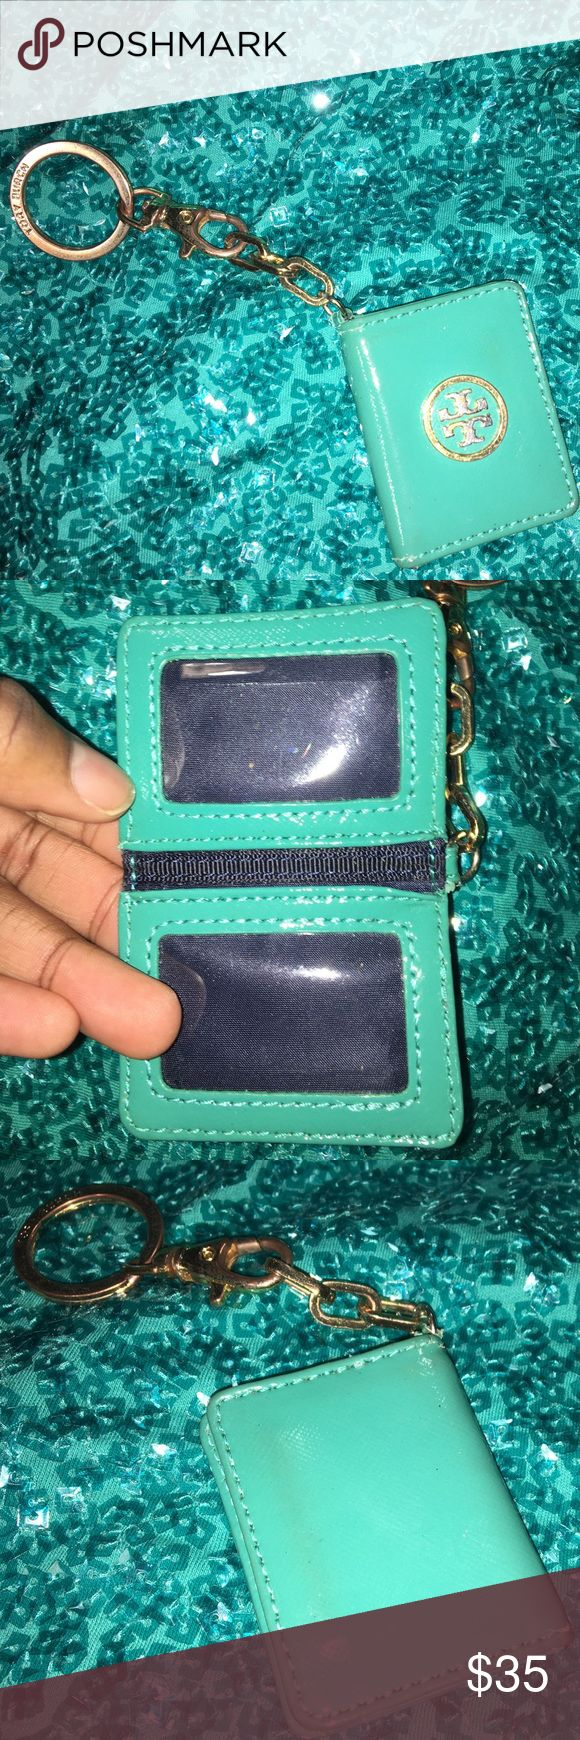 """Tory Burch Mini ID Key Chain Super cute Authentic mini-key ID holder. It shows wear from usage. Emblem has scratches and a little discolored, and little holder has a bit of discoloration. However, it's clean inside and will look great as a key chain on your handbag. Magnetic closure. Measures: 2.5""""H x 2""""W. opens to be twice the size. You can put a mini photo of your dog...or child in it!😊 Tory Burch Accessories Key & Card Holders"""